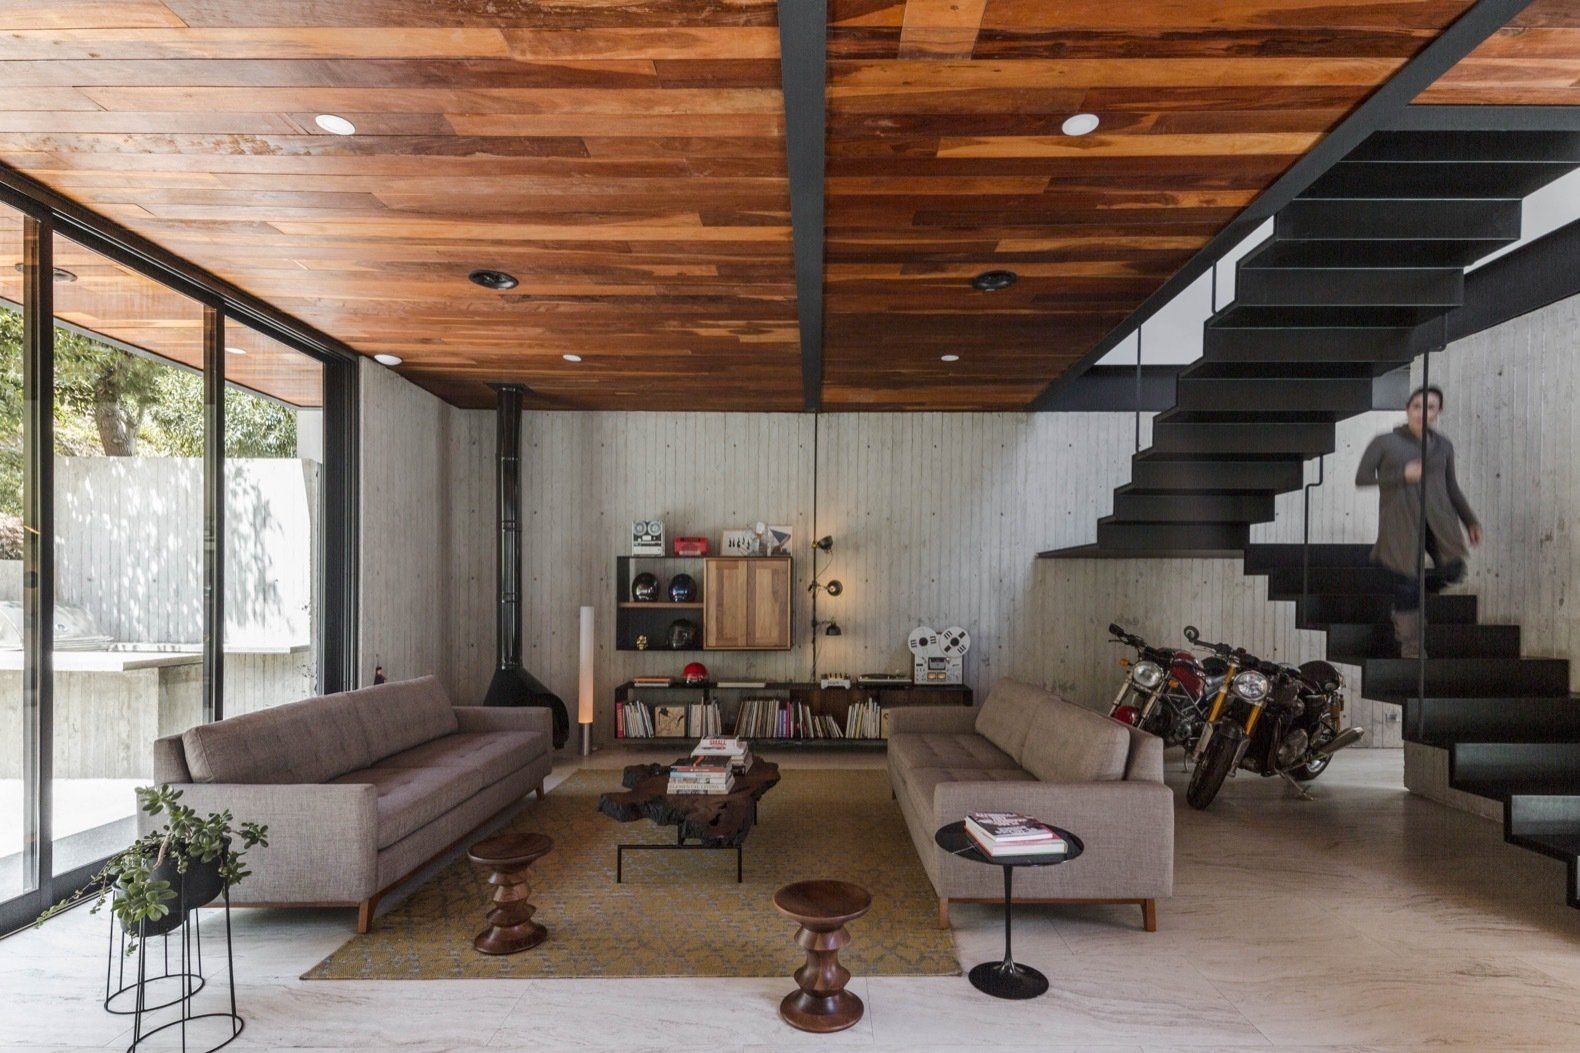 Living, Porcelain Tile, Floor, Bookcase, Recessed, Coffee Tables, Hanging, Sofa, and Lamps A minimalist staircase links the living room to the upper level.    Living Recessed Bookcase Floor Photos from A Modern Mexican Home Rises With Vertical Timber Cladding